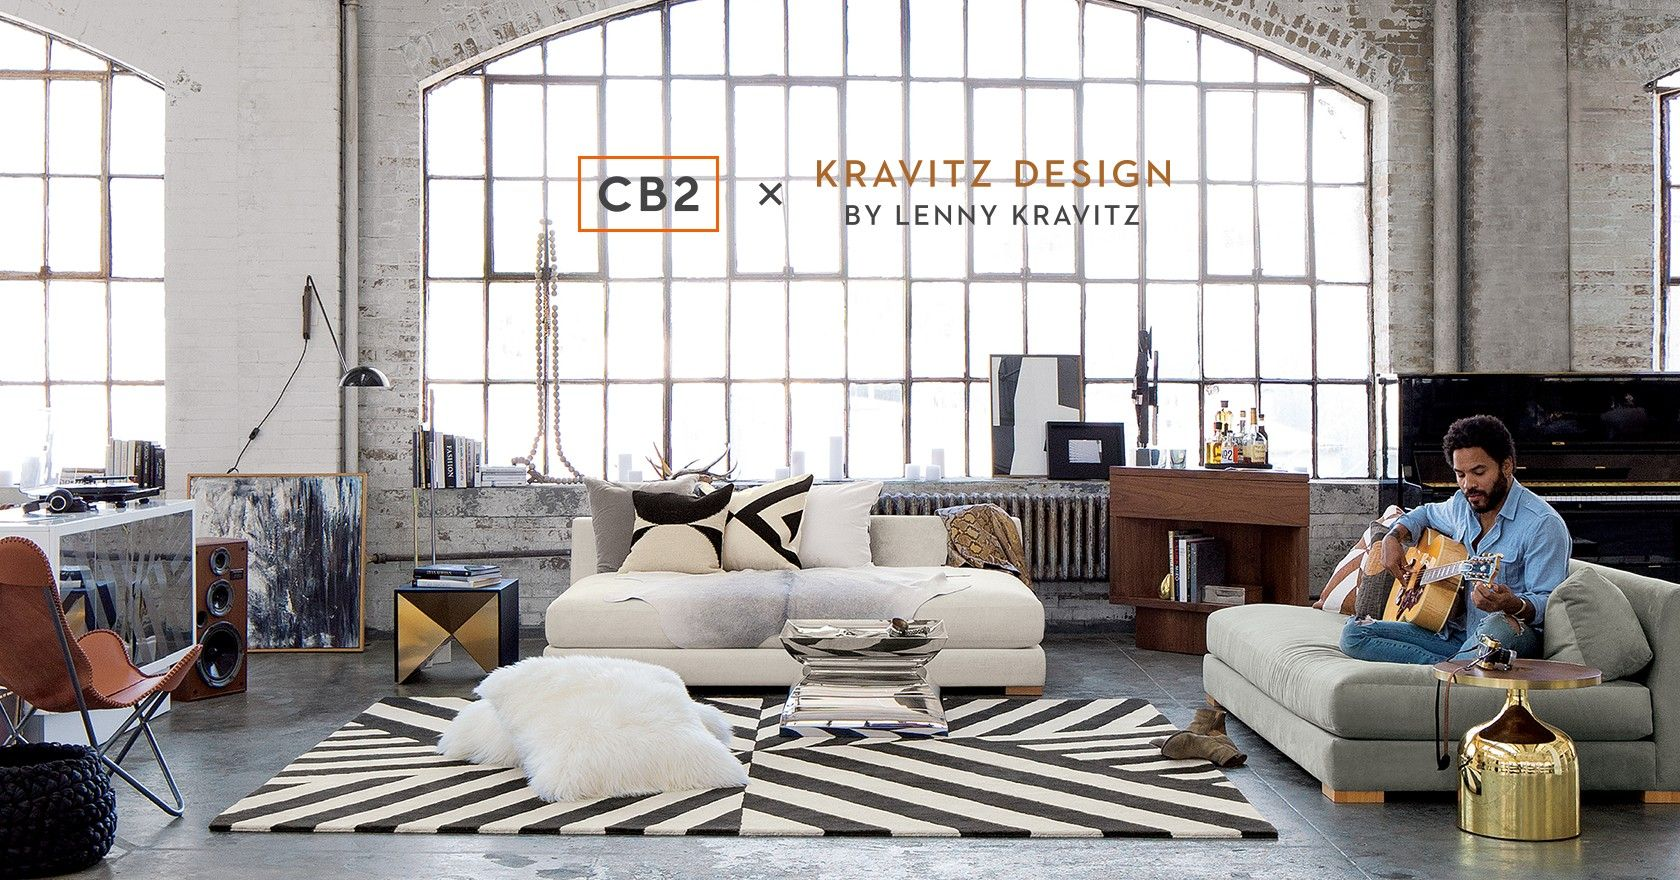 Cb2 X Kravitz Design For The Home Lenny Kravitz 70s Furniture